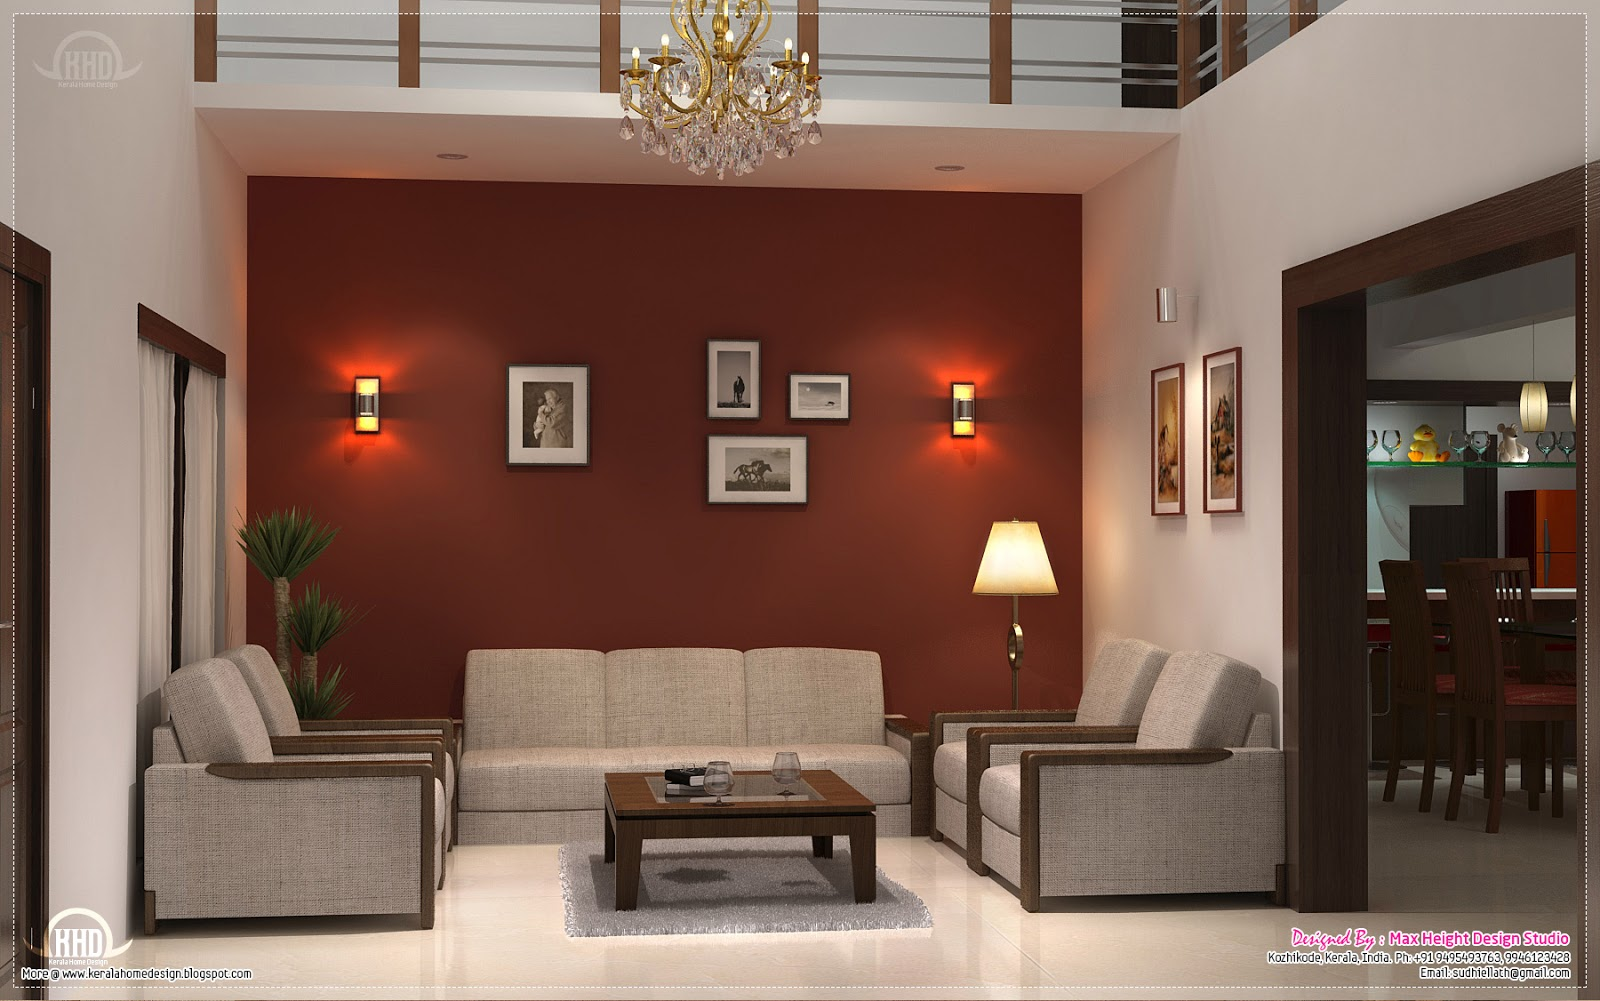 Home interior design ideas kerala home design and floor for Interior house decoration ideas